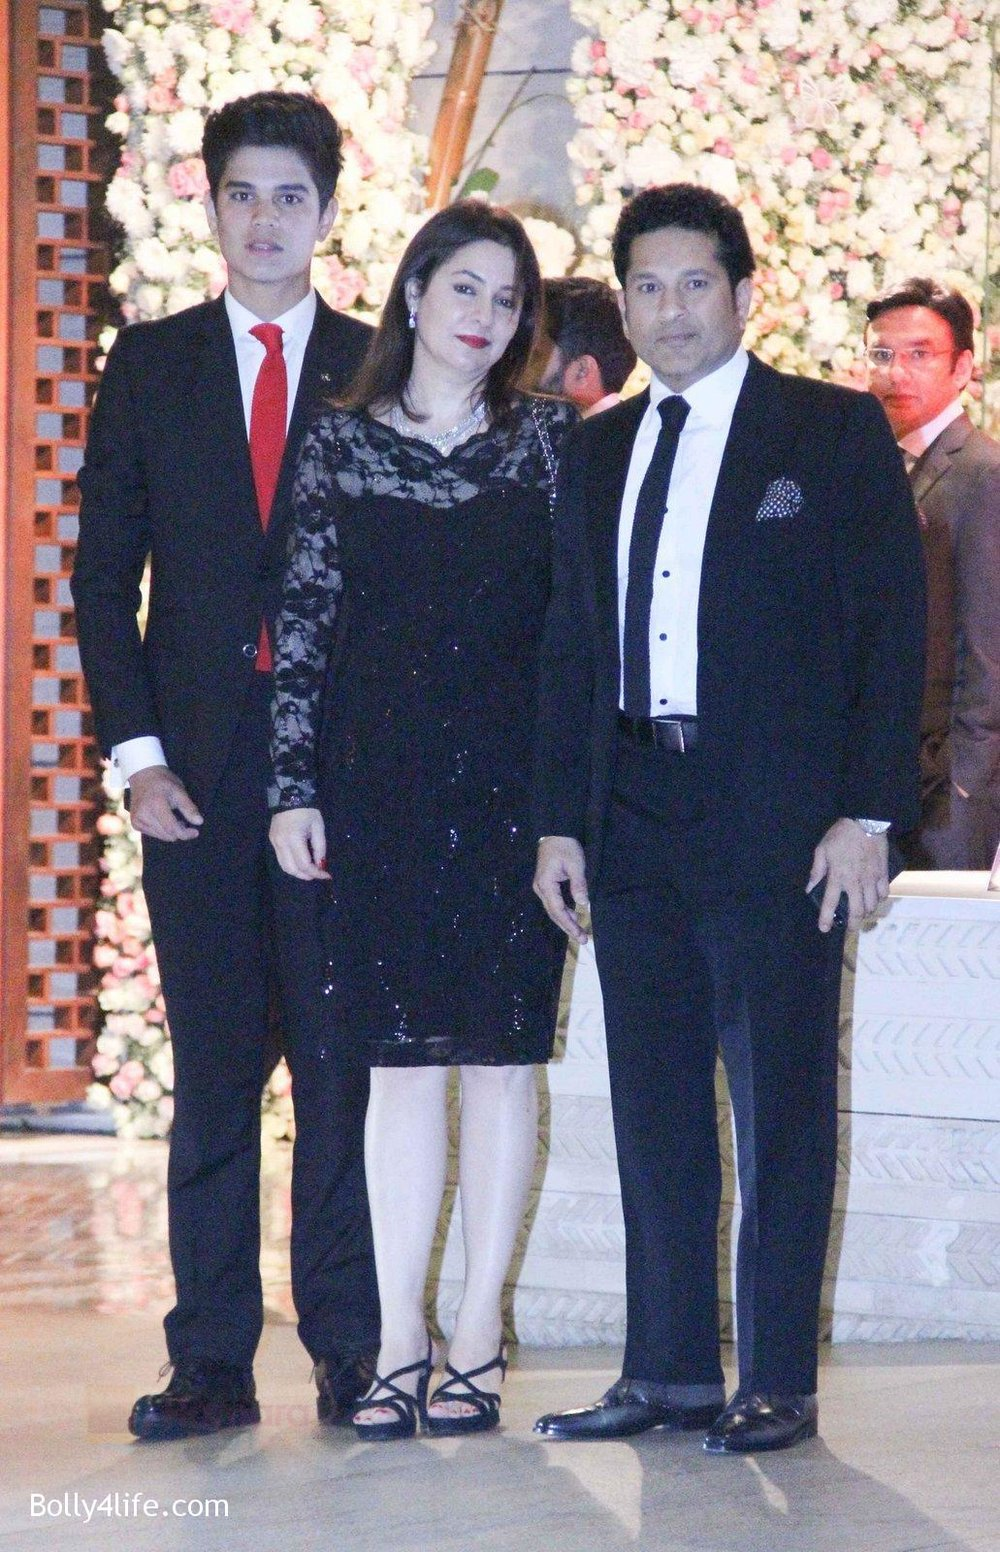 Sachin-Tendulkar-at-the-Ambanis-wedding-party-of-their-niece-Isheta-Salgaoncar-1.jpg